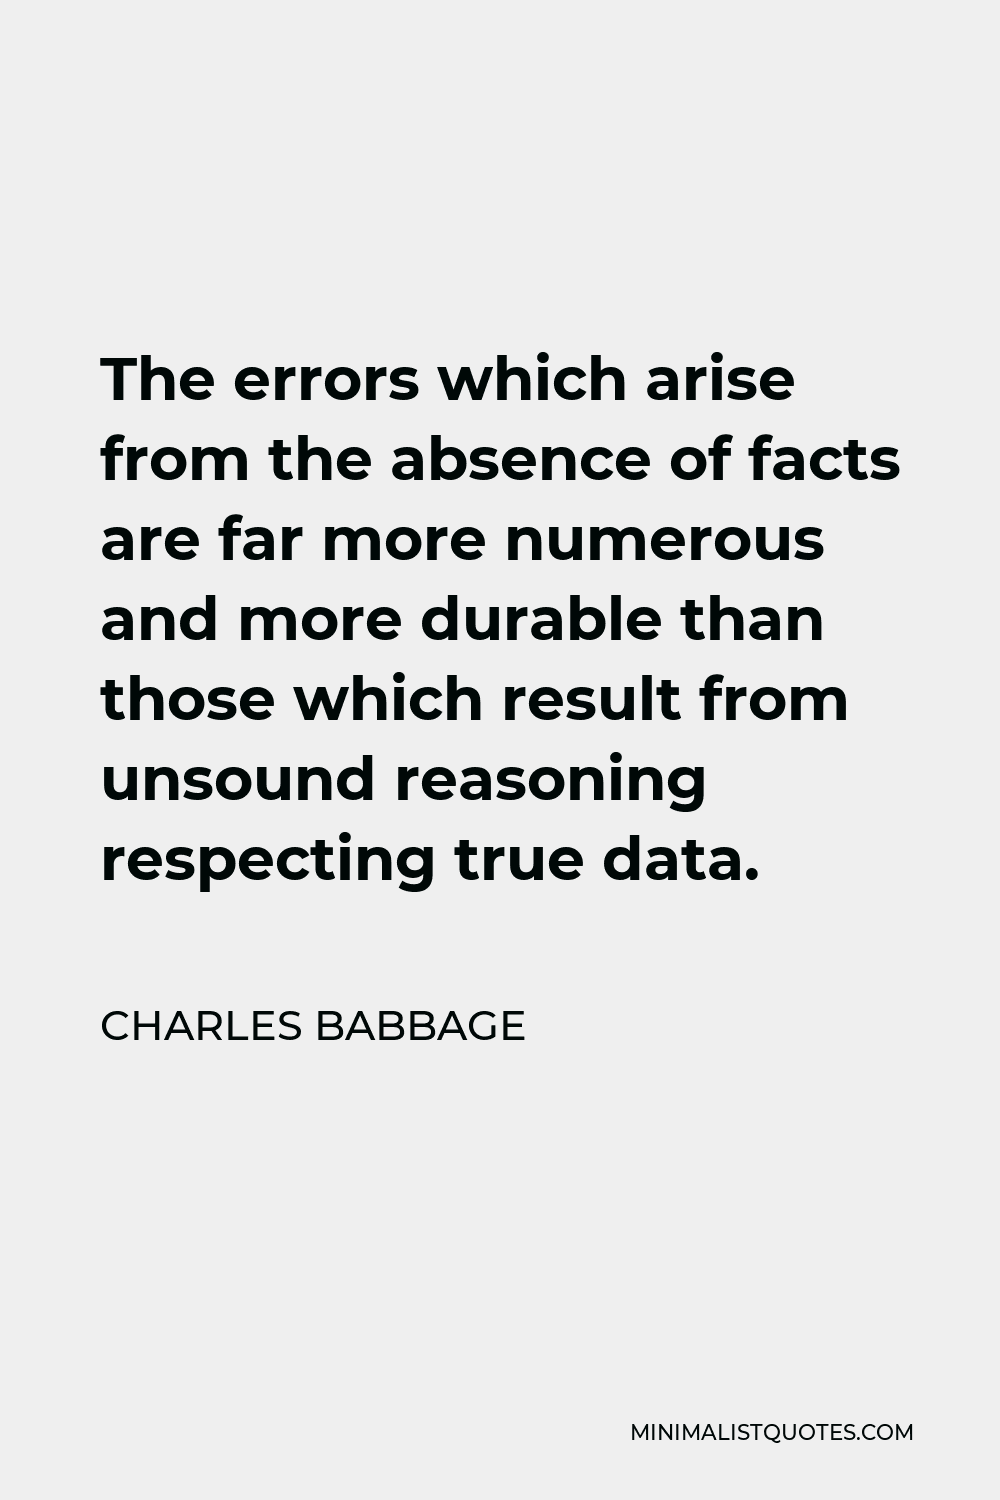 Charles Babbage Quote - The errors which arise from the absence of facts are far more numerous and more durable than those which result from unsound reasoning respecting true data.